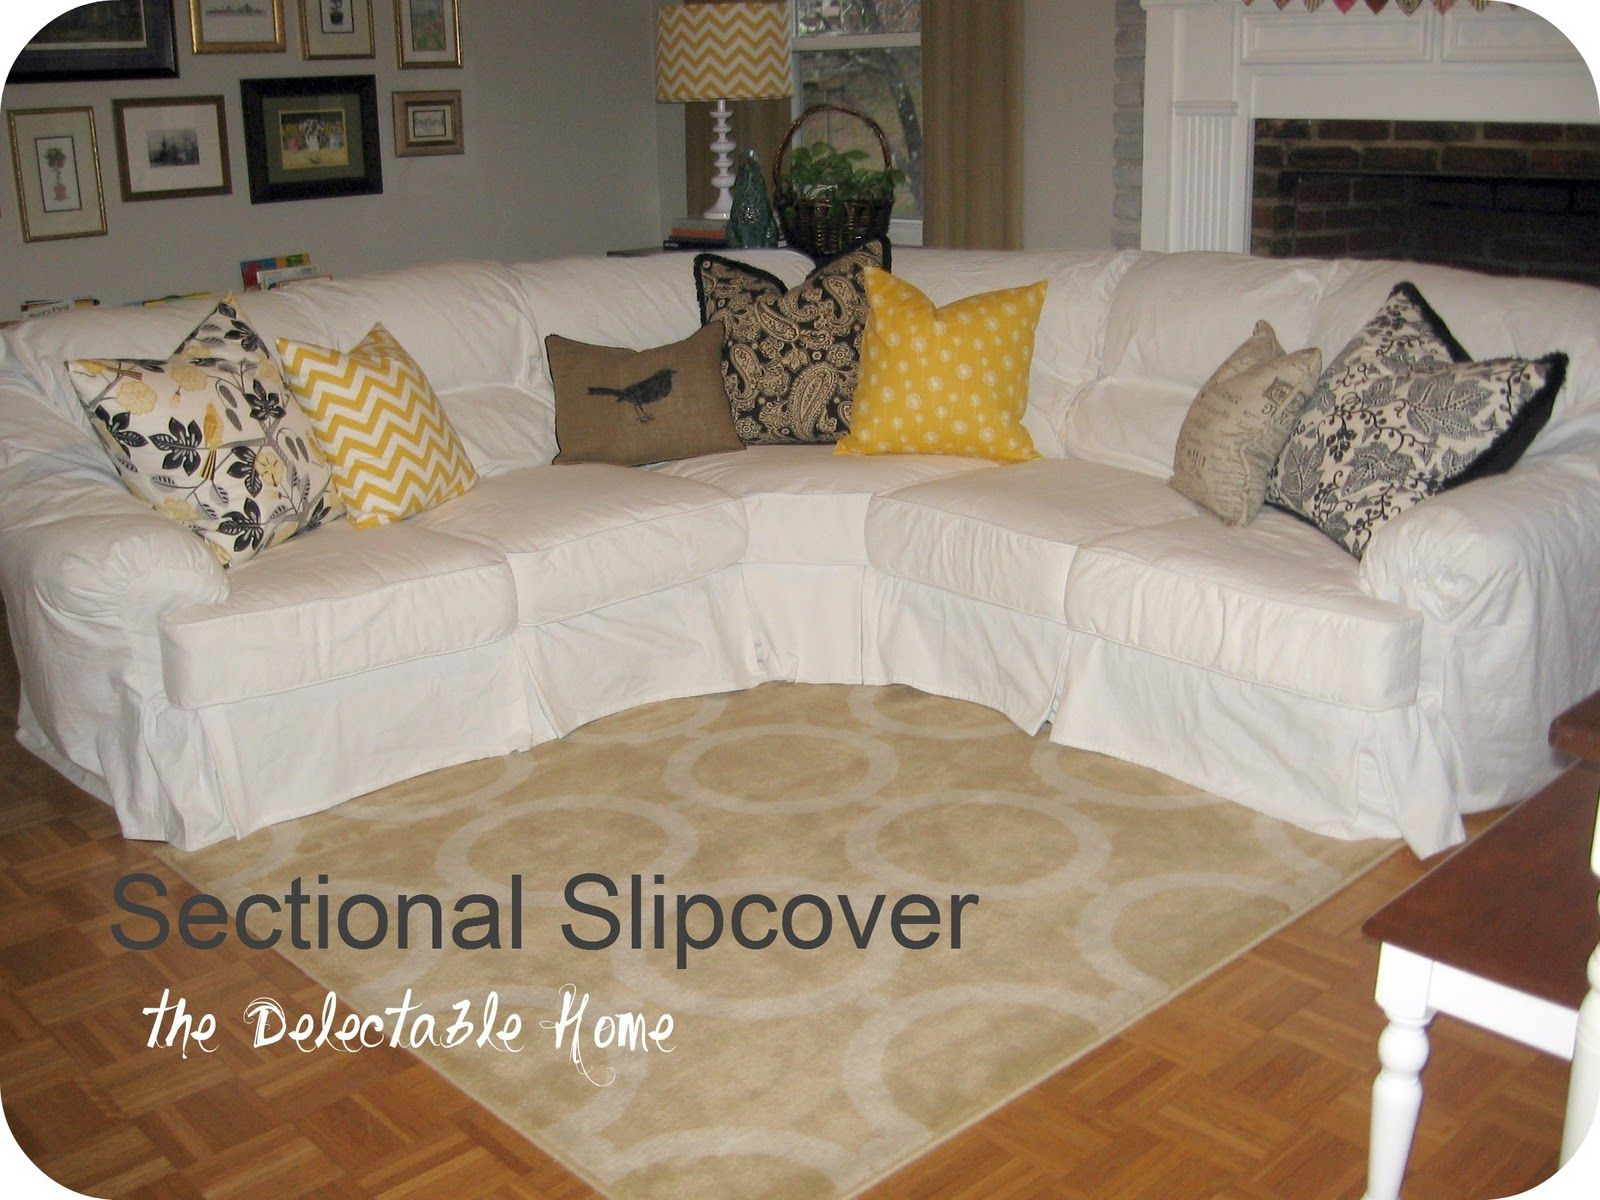 25+ best ideas about Sectional slipcover on Pinterest